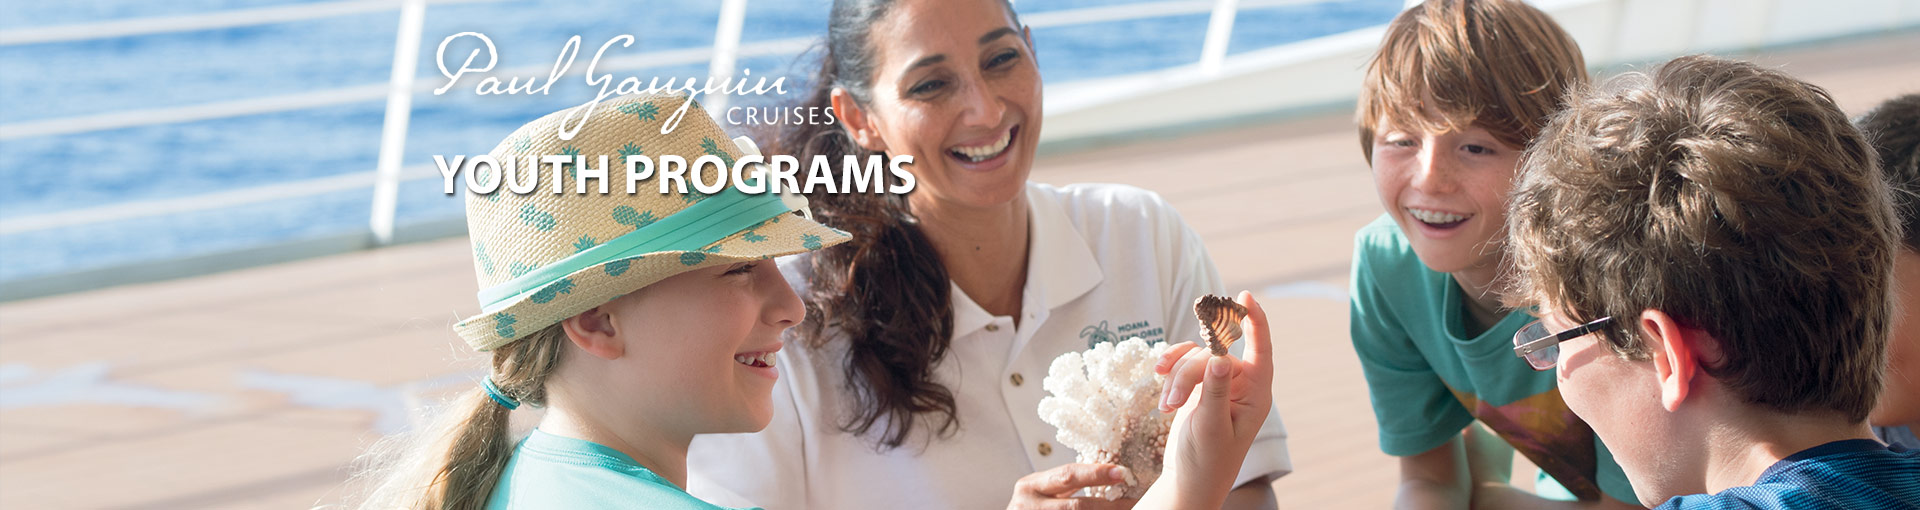 Paul Gauguin Cruises Youth Programs